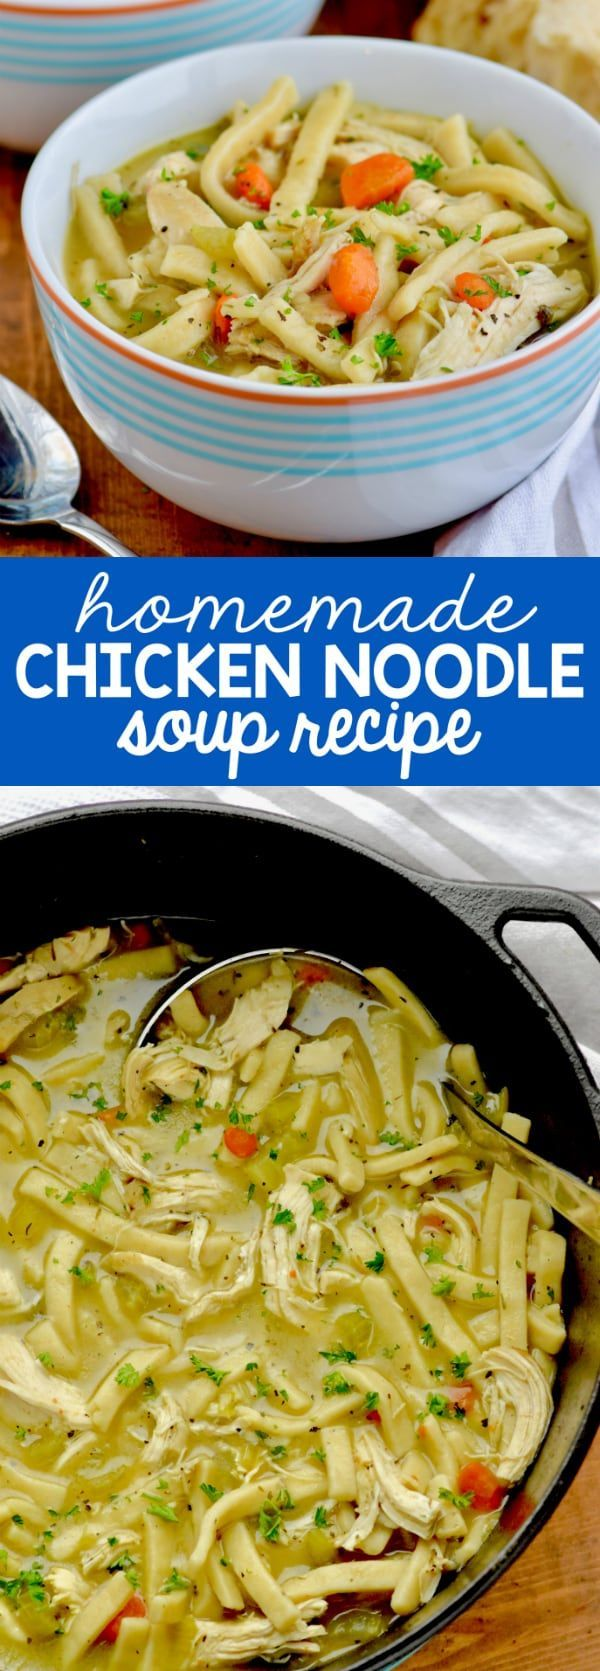 This homemade chicken noodle soup is made totally from scratch with bone in chicken thighs, thick egg noodles, and fresh vegetables.